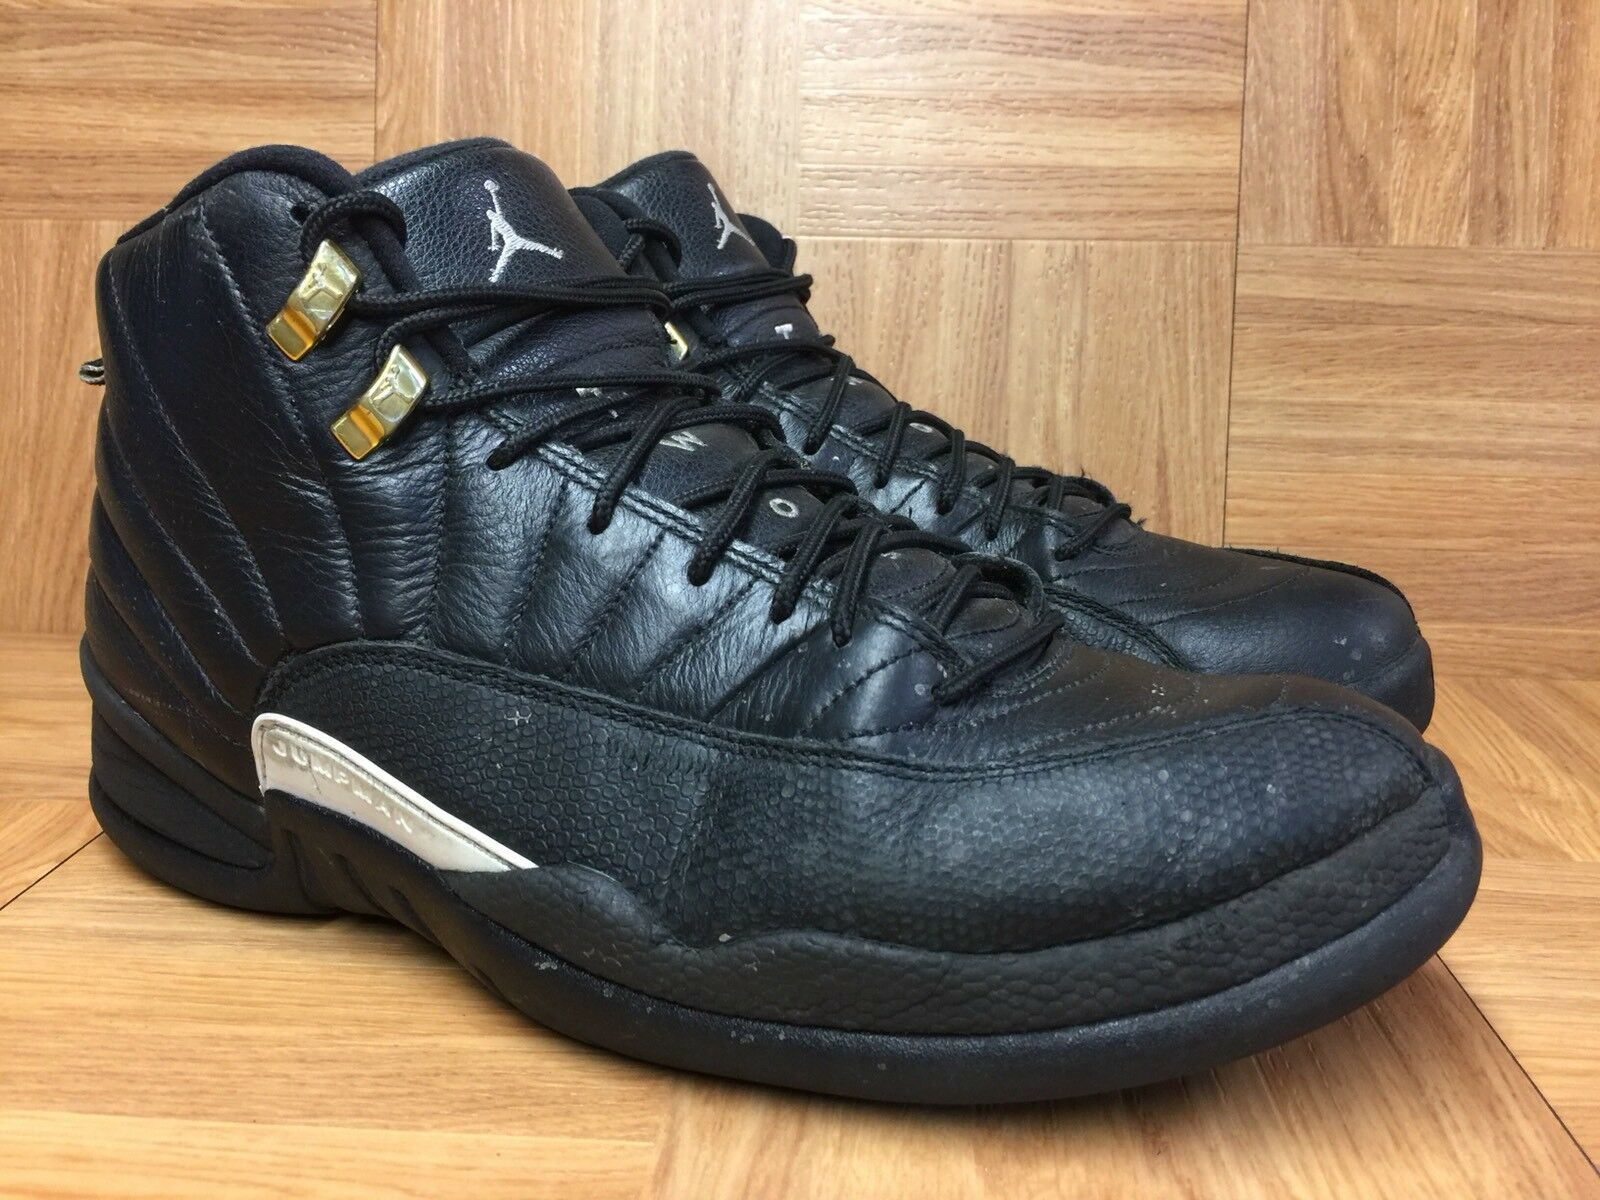 RARE  Nike Air Jordan 12 XII Retro The Master Black Leather Sz 10.5 130690-013